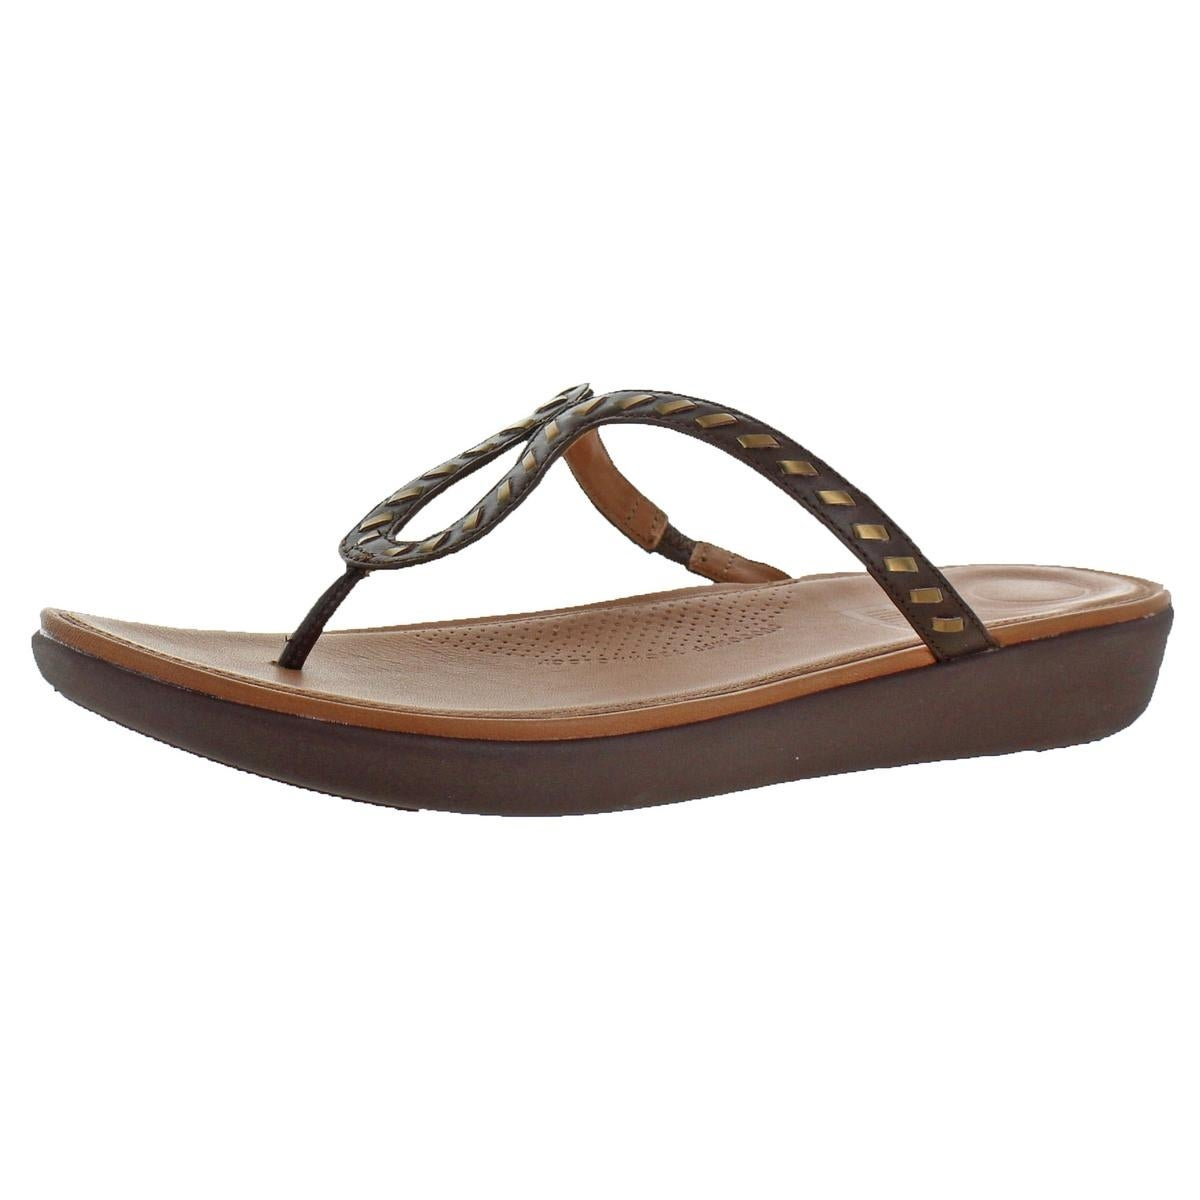 00b449689eda7 Shop Fitflop Womens Strata Toe Thong Thong Sandals Leather Slip-On - On  Sale - Free Shipping Today - Overstock - 26030327